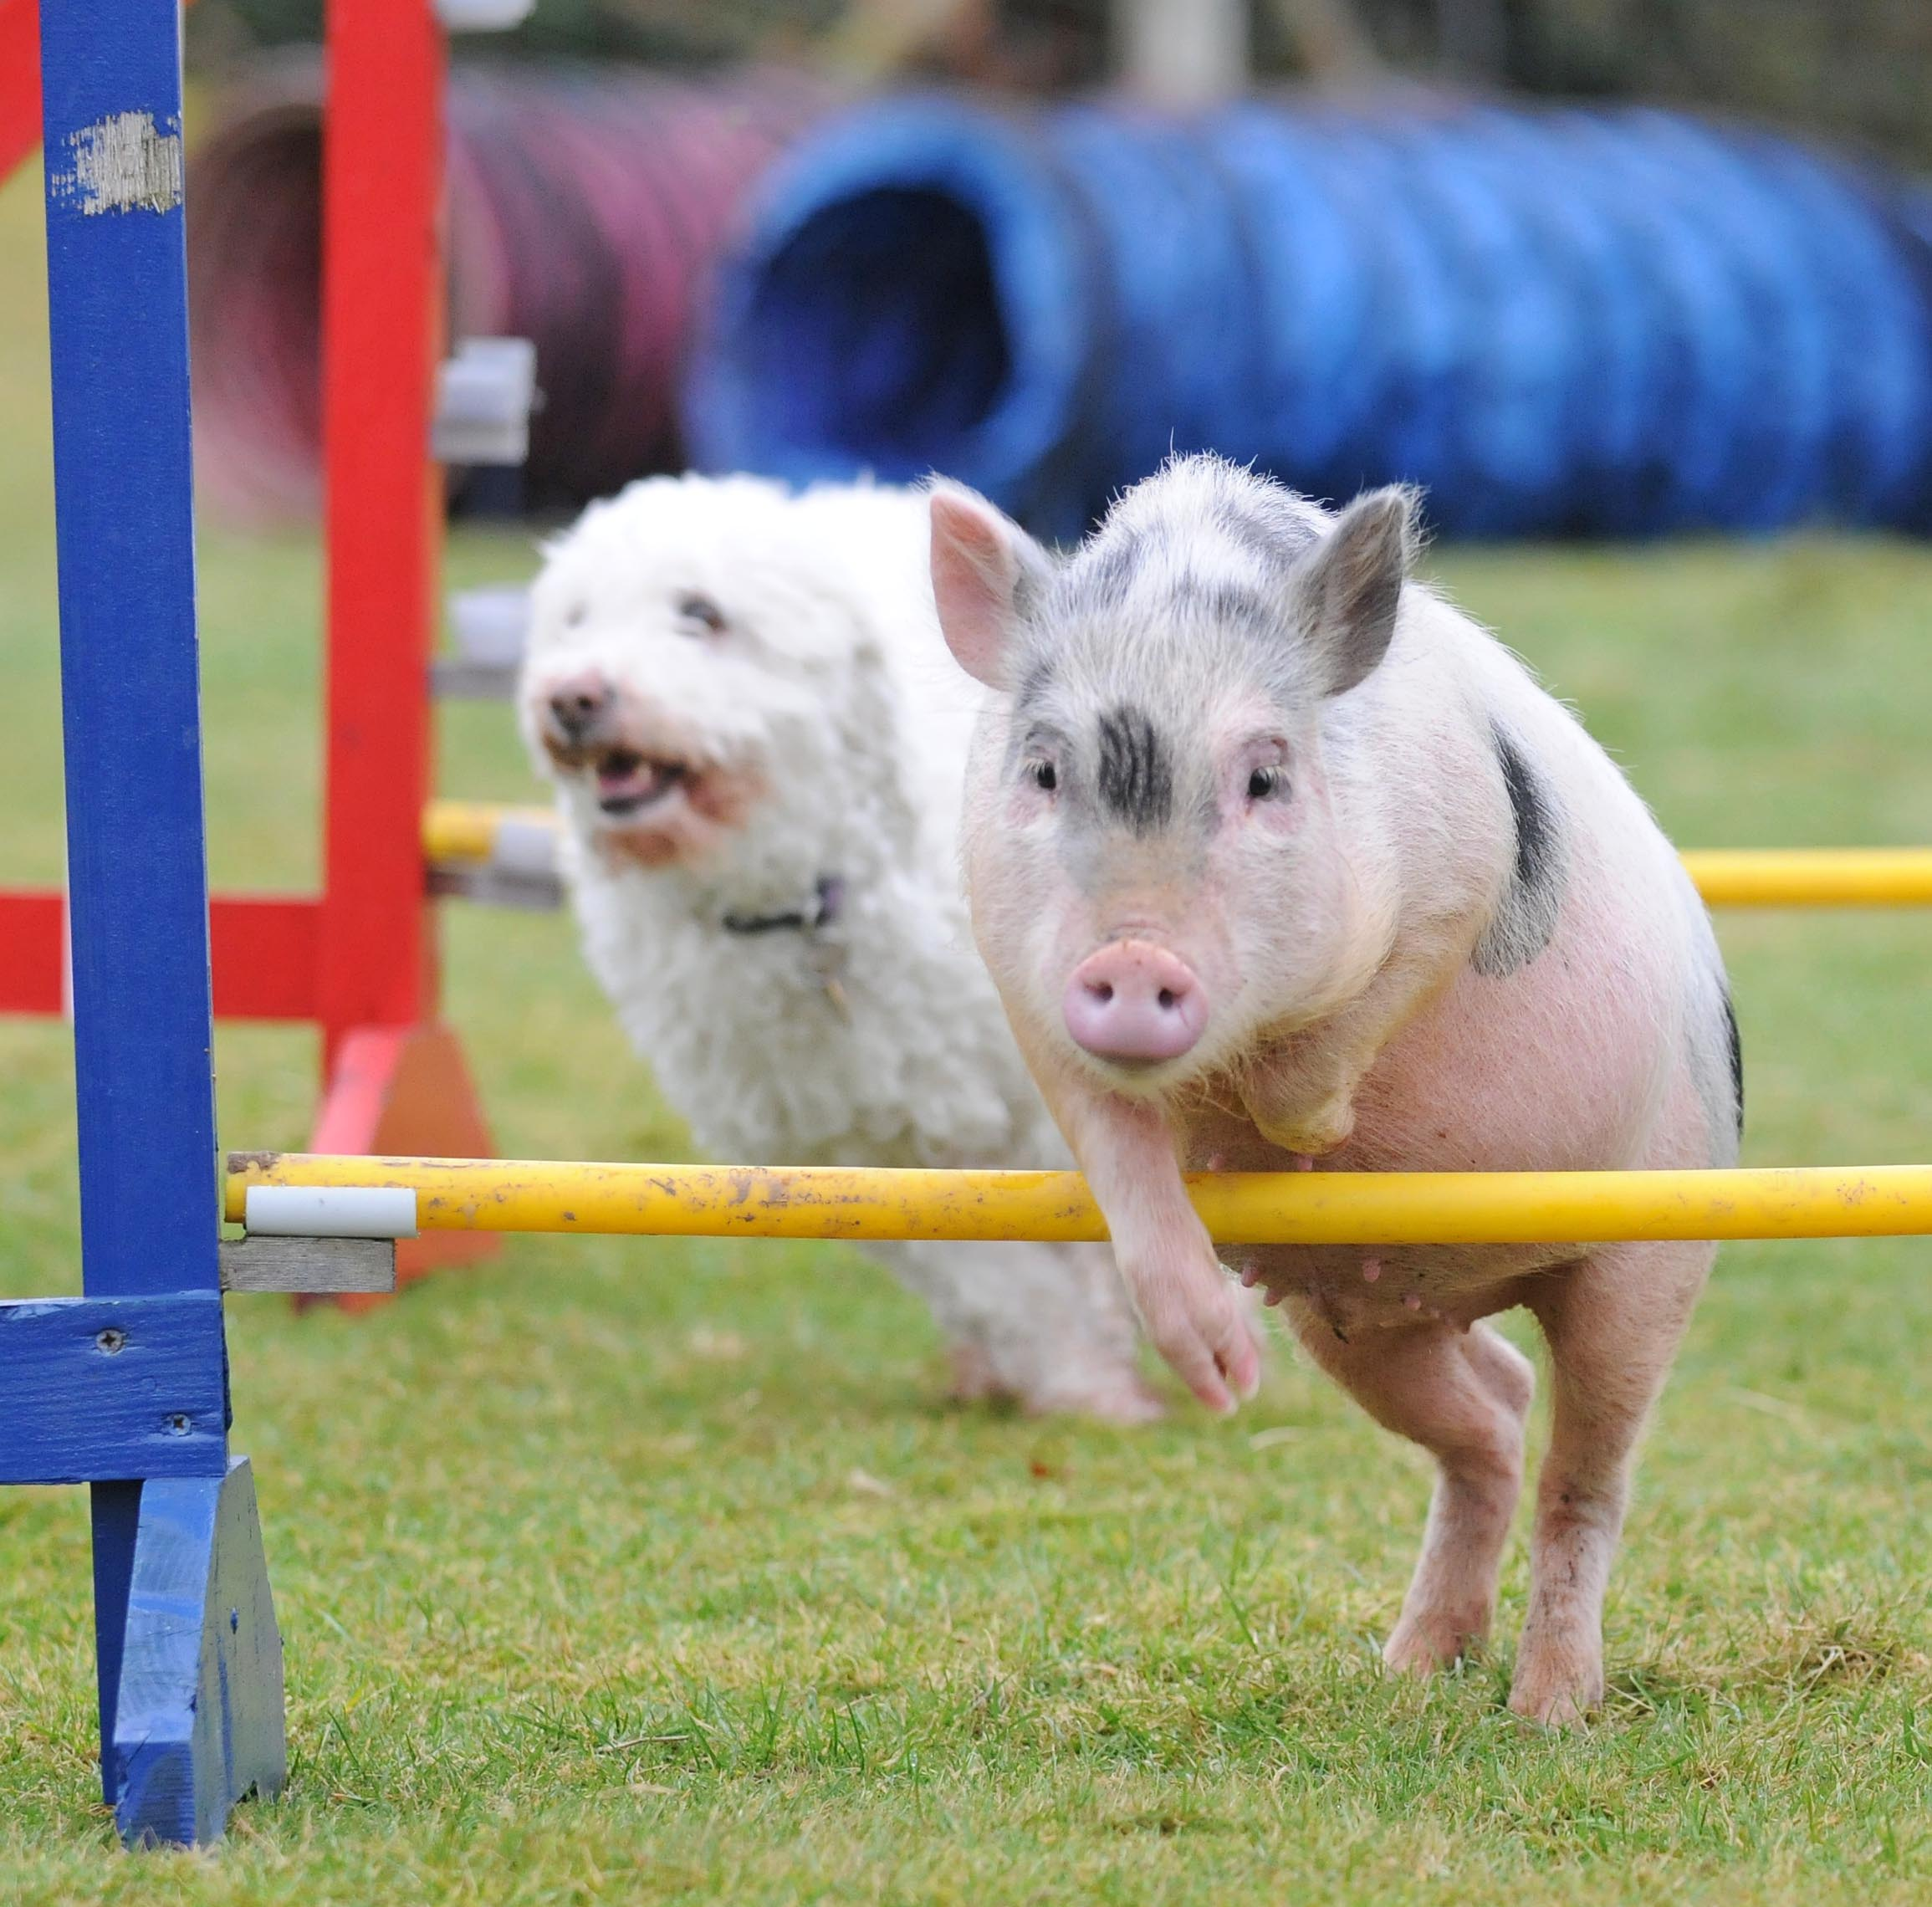 Pigs outsmart dogs